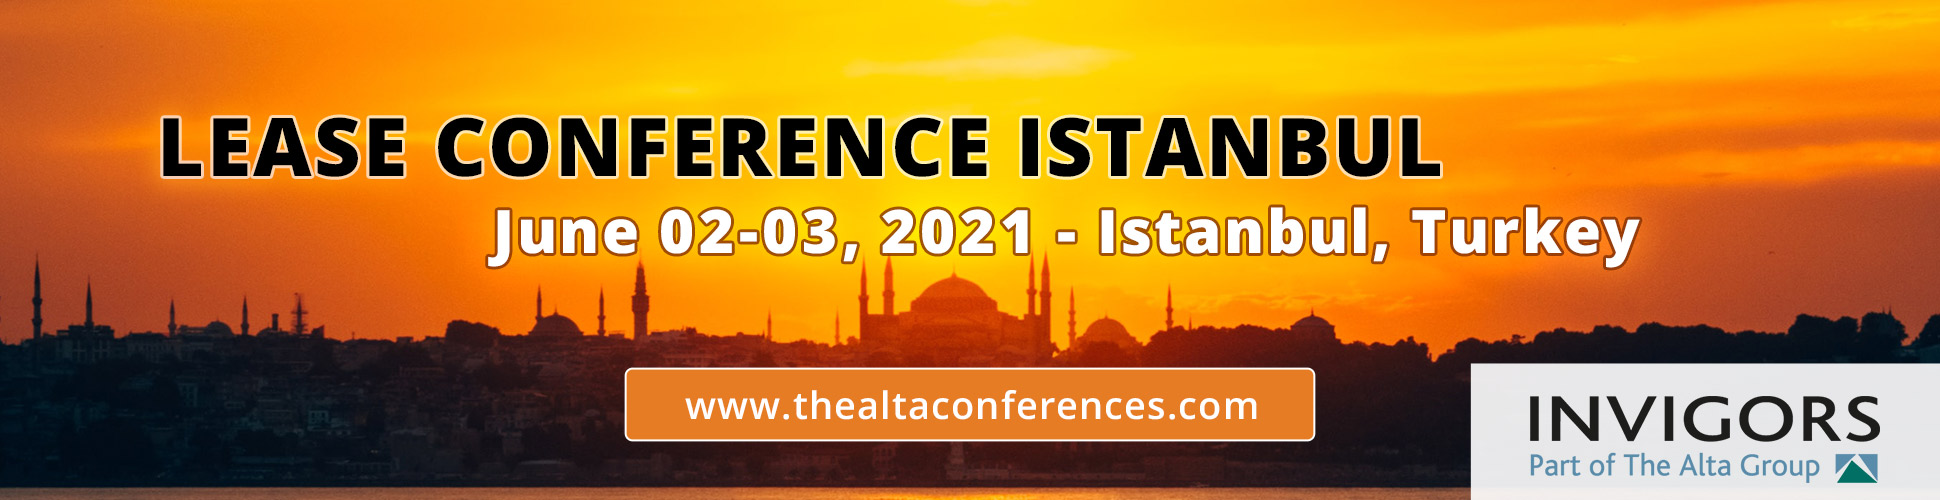 Banner Invigors TurkeyConference 1940x500 june